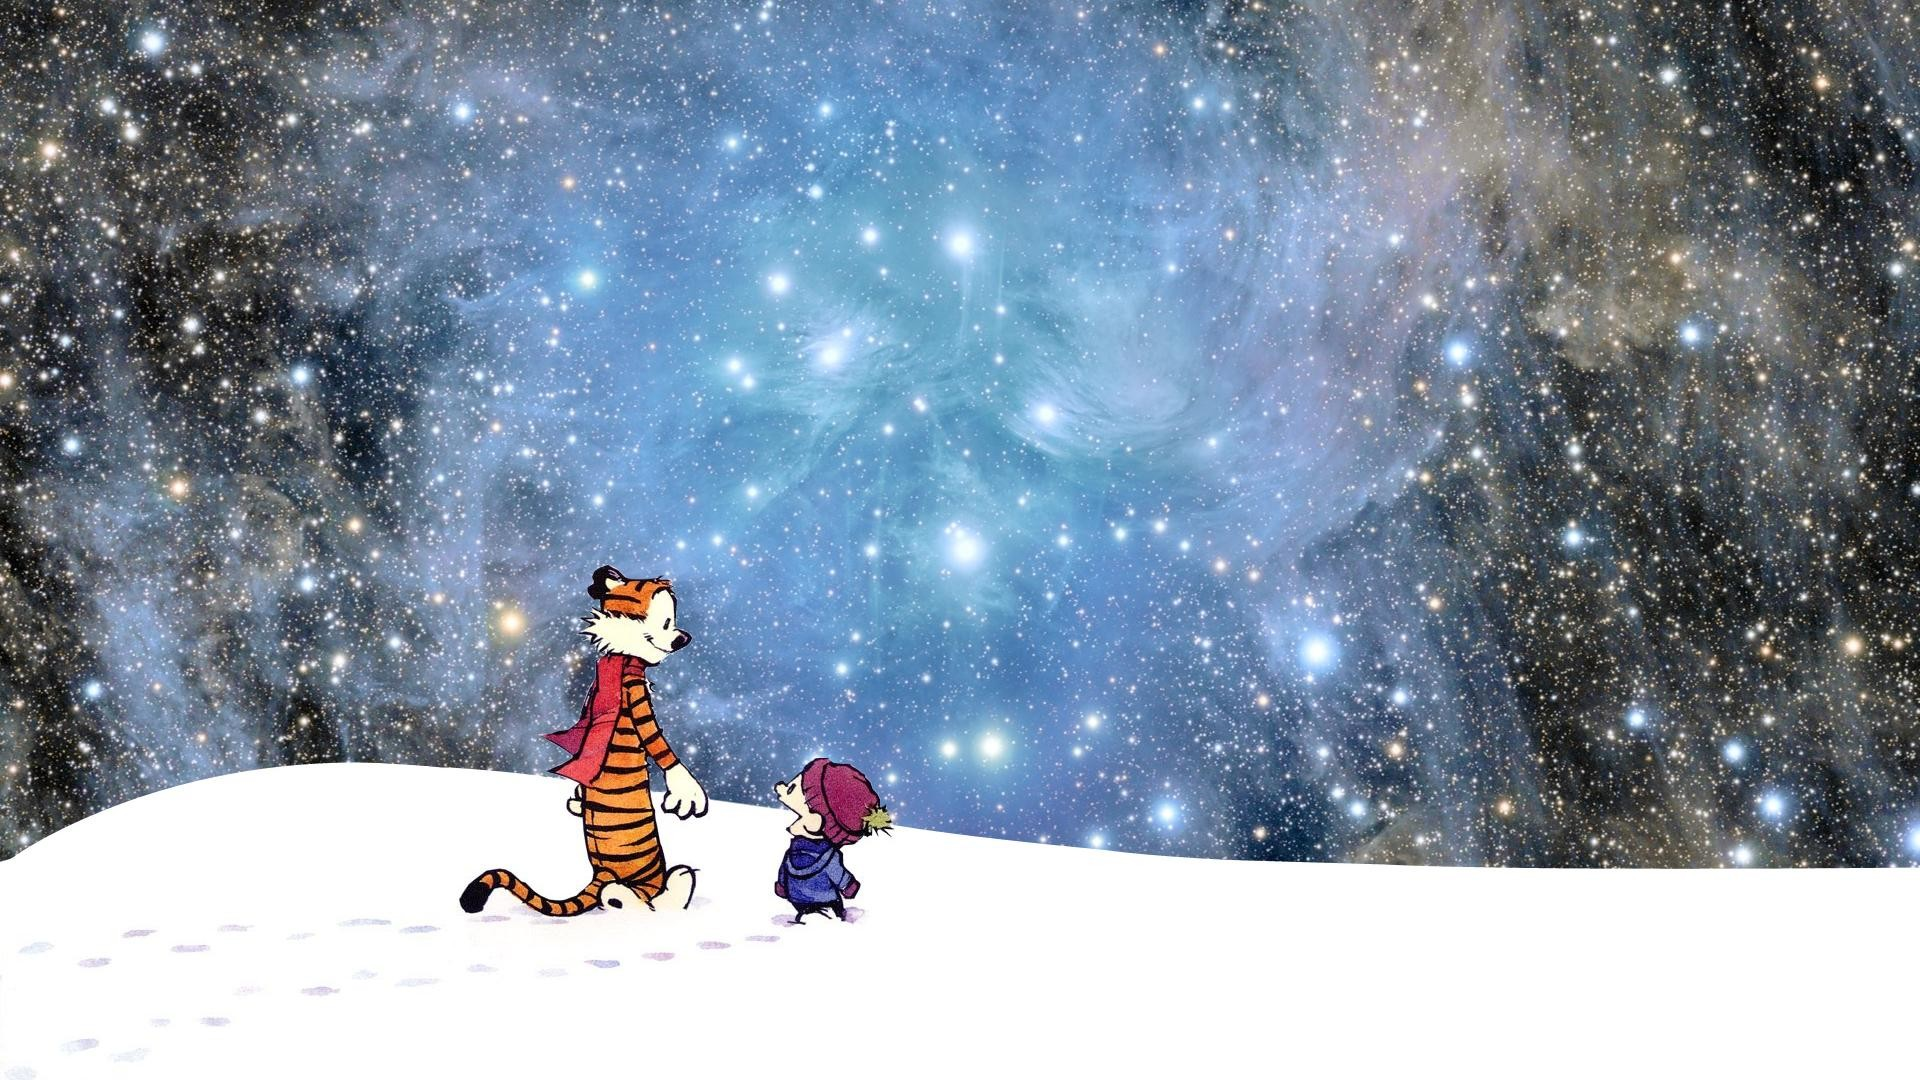 Res: 1920x1080, Cute Calvin and Hobbes Wallpapers Desktop Pictures.